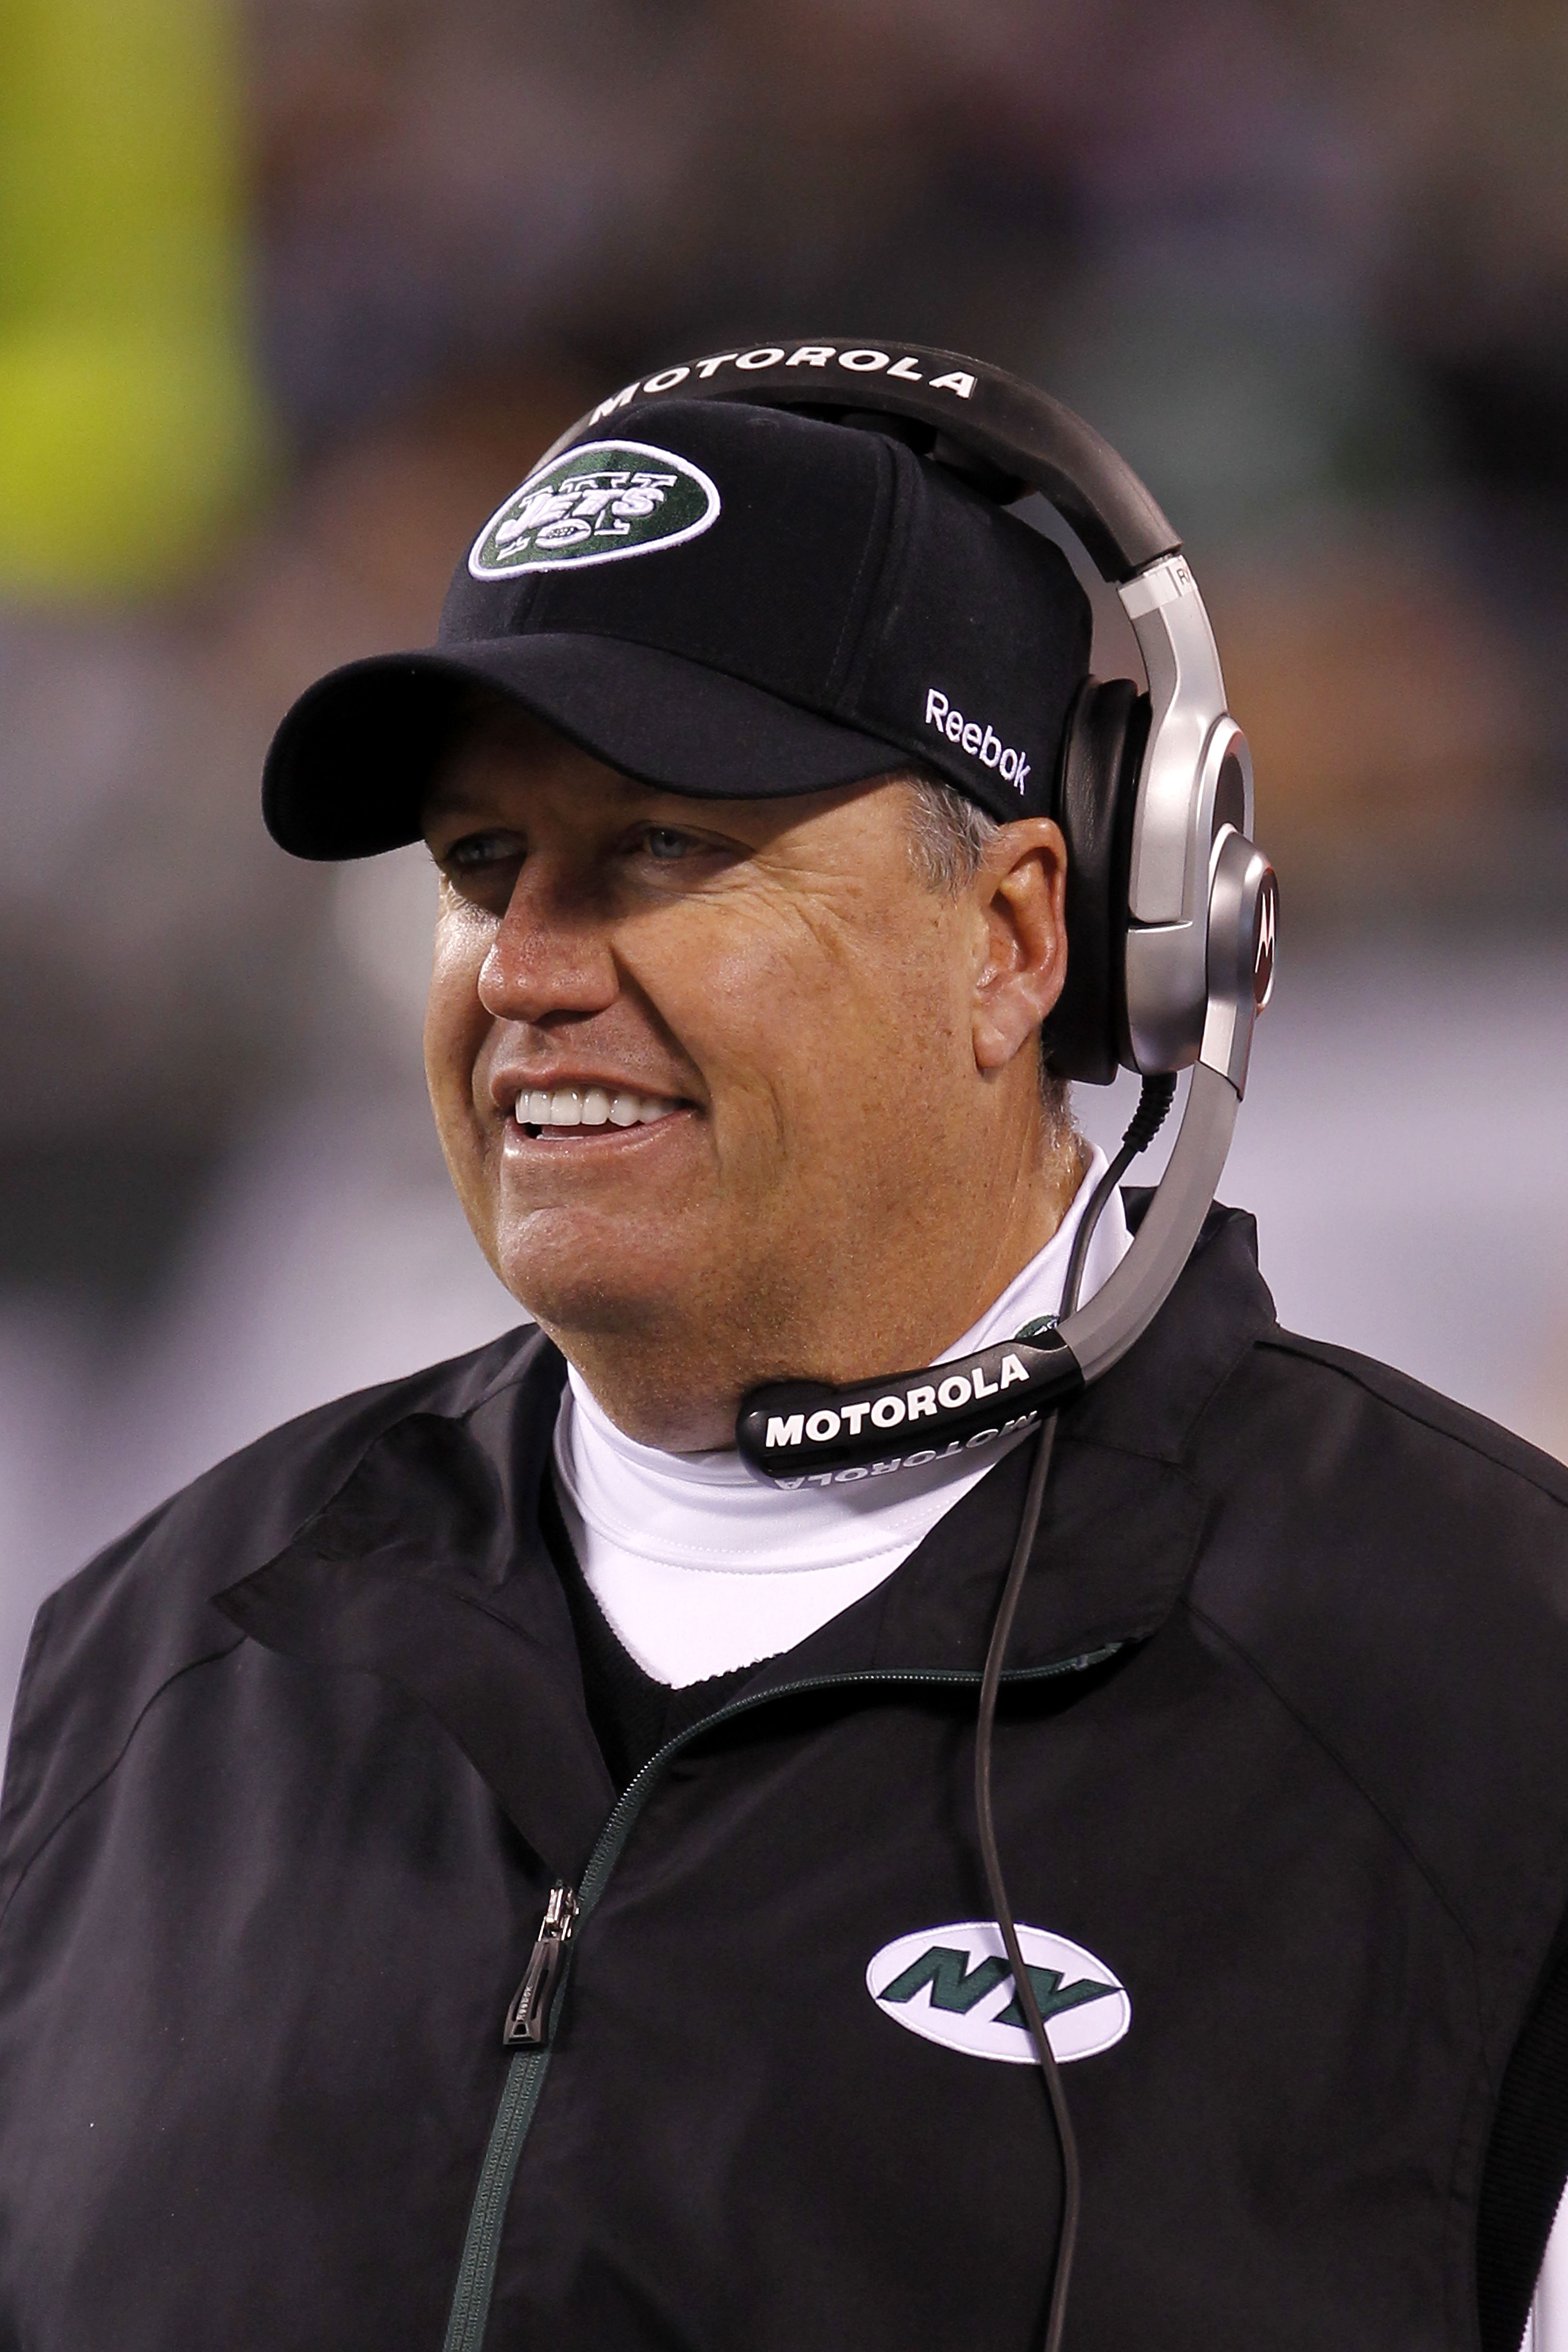 EAST RUTHERFORD, NJ - NOVEMBER 25: Head Coach Rex Ryan of the New York Jets watche the game against the Cincinnati Bengals at New Meadowlands Stadium on November 25, 2010 in East Rutherford, New Jersey. The Jets defeated the Bengal 26-10.  (Photo by Chris